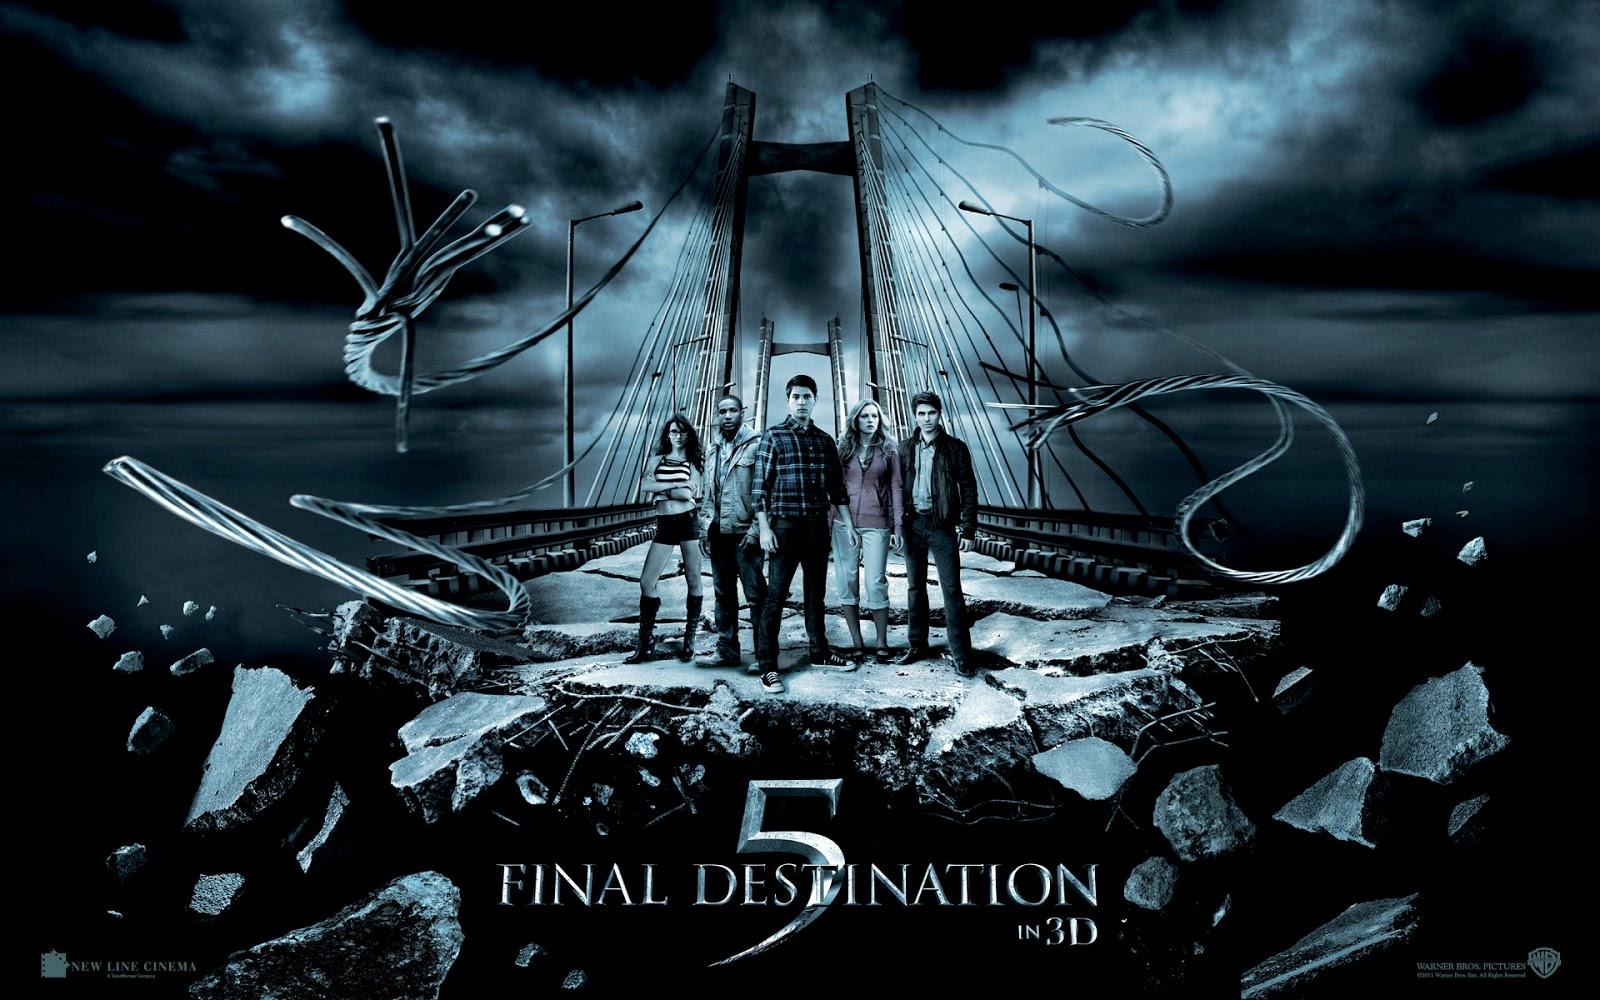 FINAL DESTINATION 5 (2011) TAMIL DUBBED HD